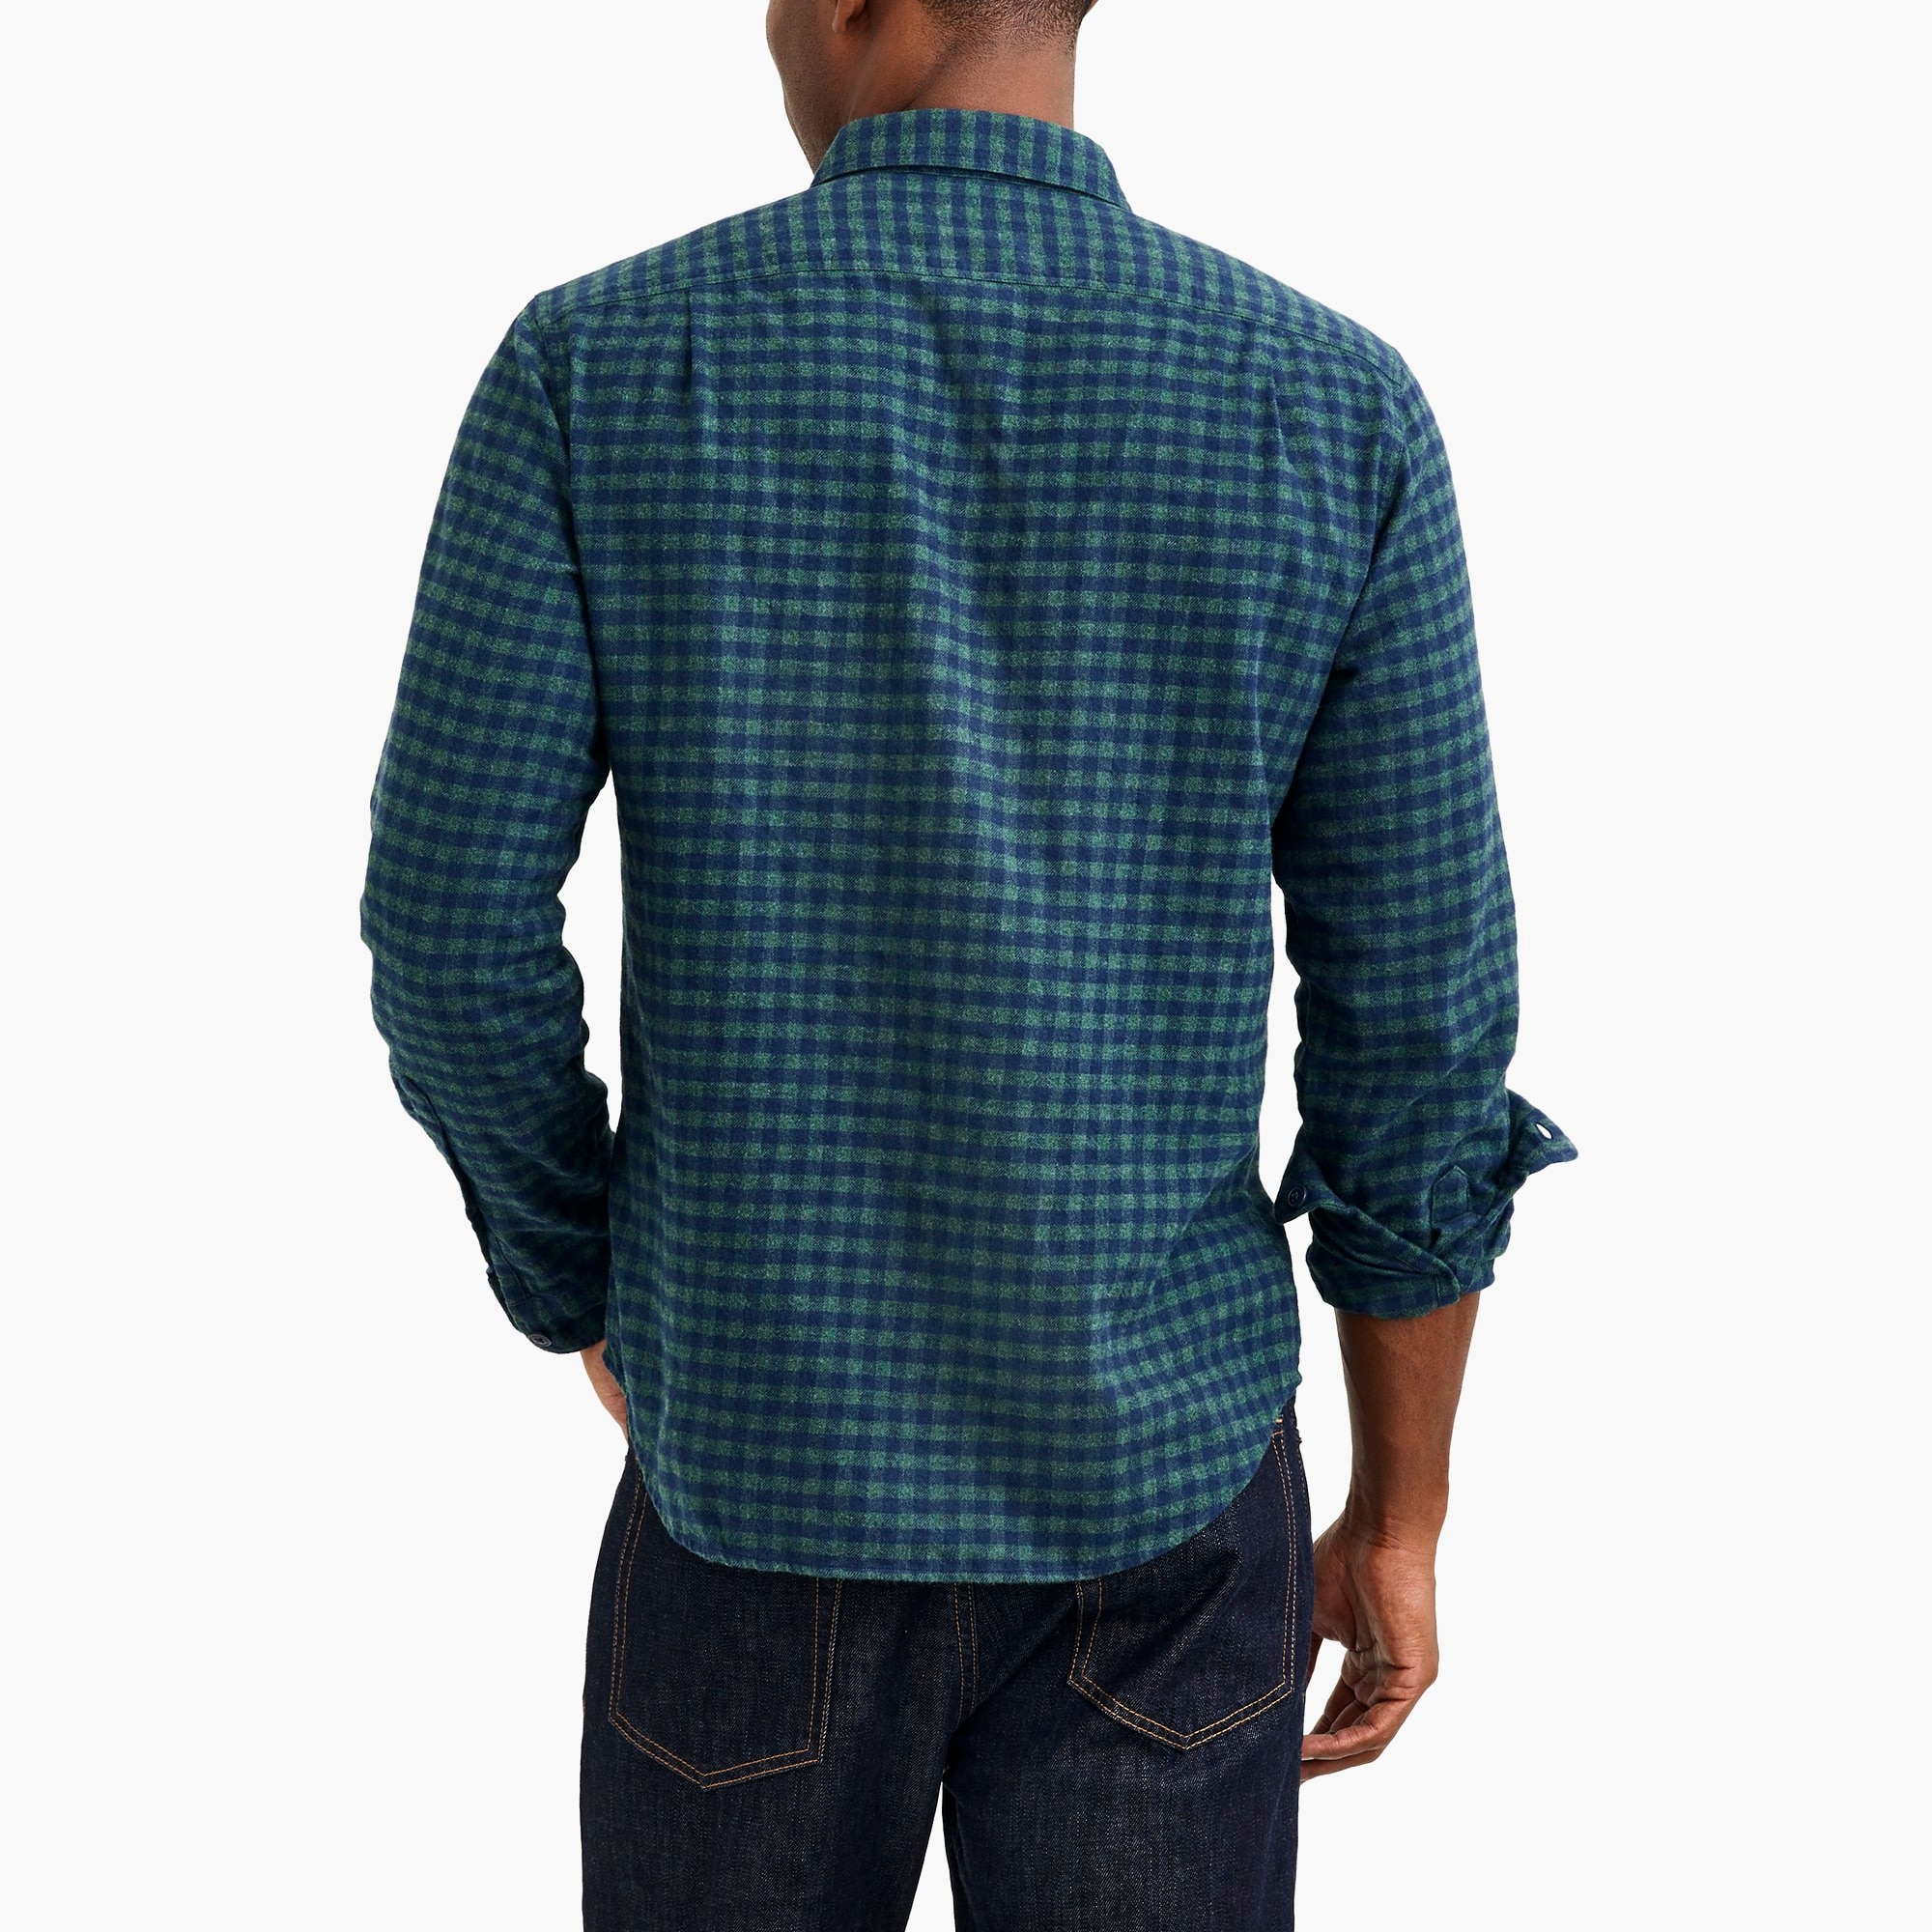 Image 2 for Heather flannel shirt in small buffalo check